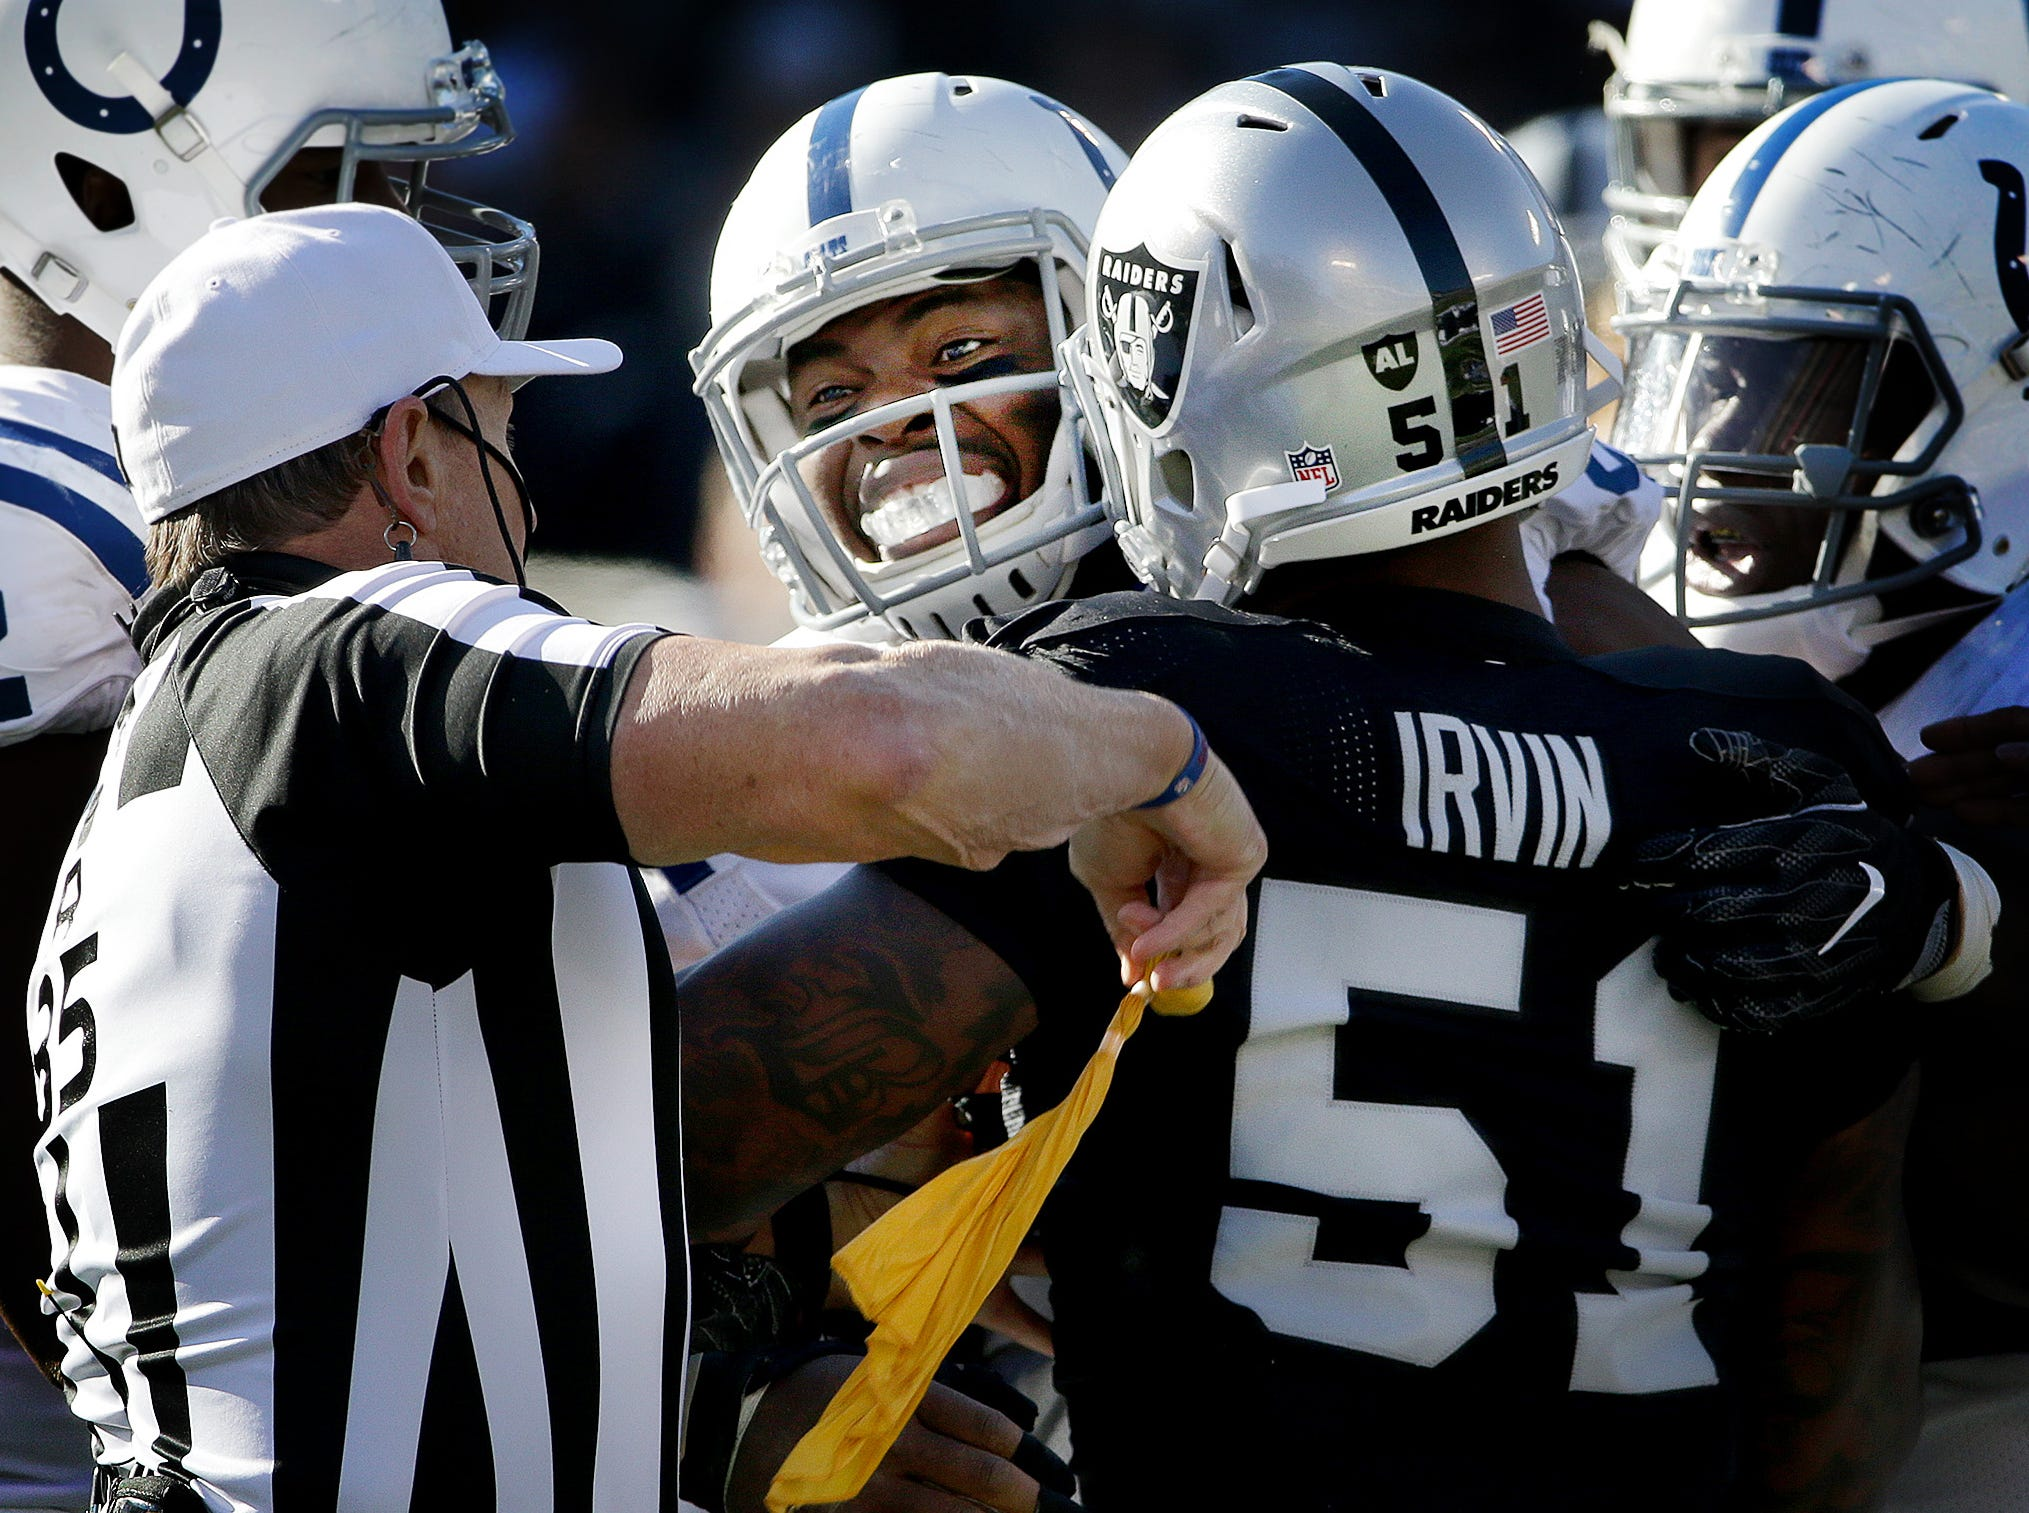 Indianapolis Colts tight end Dwayne Allen (83) gets into a shoving match with Oakland Raiders outside linebacker Bruce Irvin (51) as NFL referee Ed Hochuli (85) flagged the two for unsportsmanlike conduct at Oakland Alameda Coliseum in Oakland, Calif. Saturday, December 24, 2016.